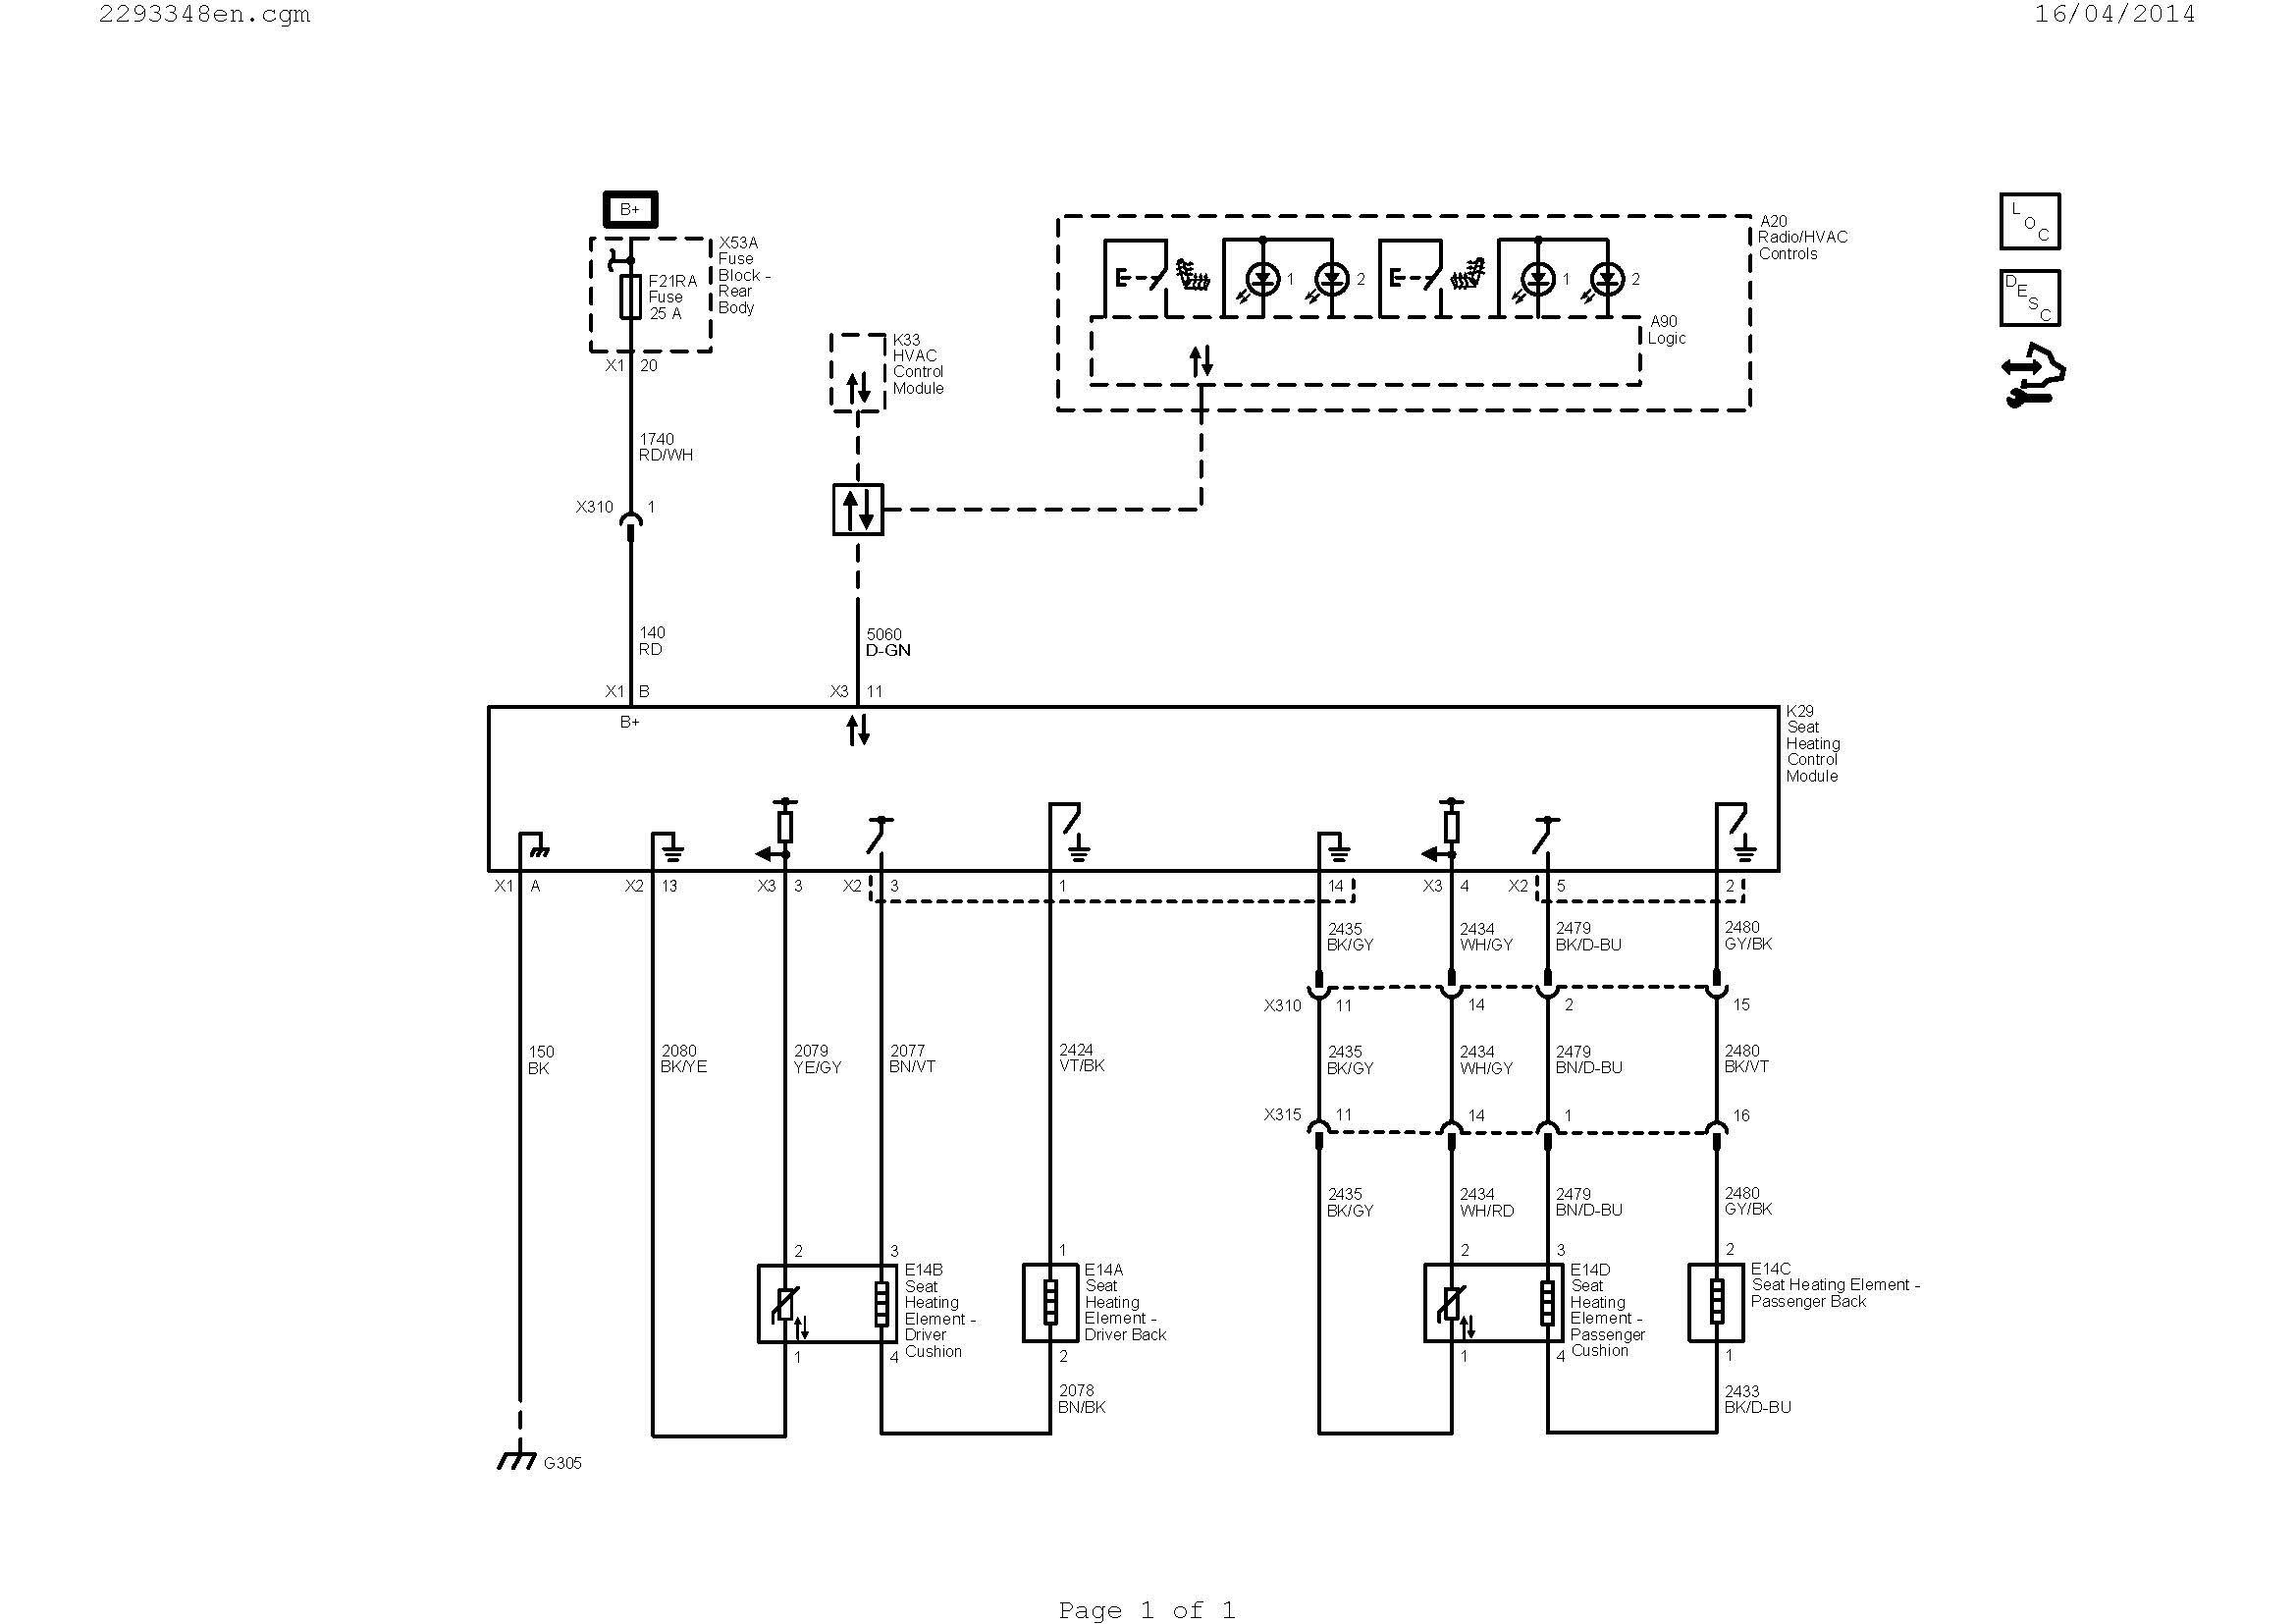 4 wire thermostat wiring diagram Collection-Nest Wireless thermostat Wiring Diagram Refrence Wiring Diagram Ac Valid Hvac Diagram Best Hvac Diagram 0d 12-o